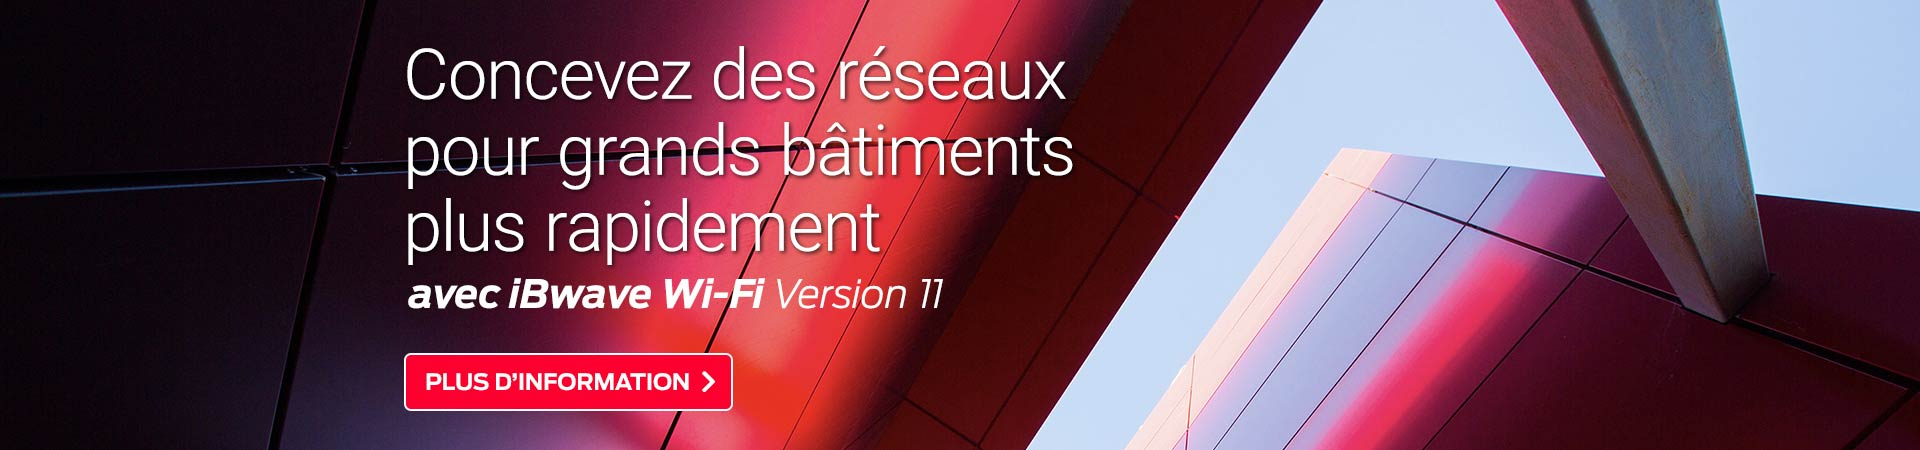 /images/home/R11/release-11-wi-fi-homepage-banner_fr.jpg